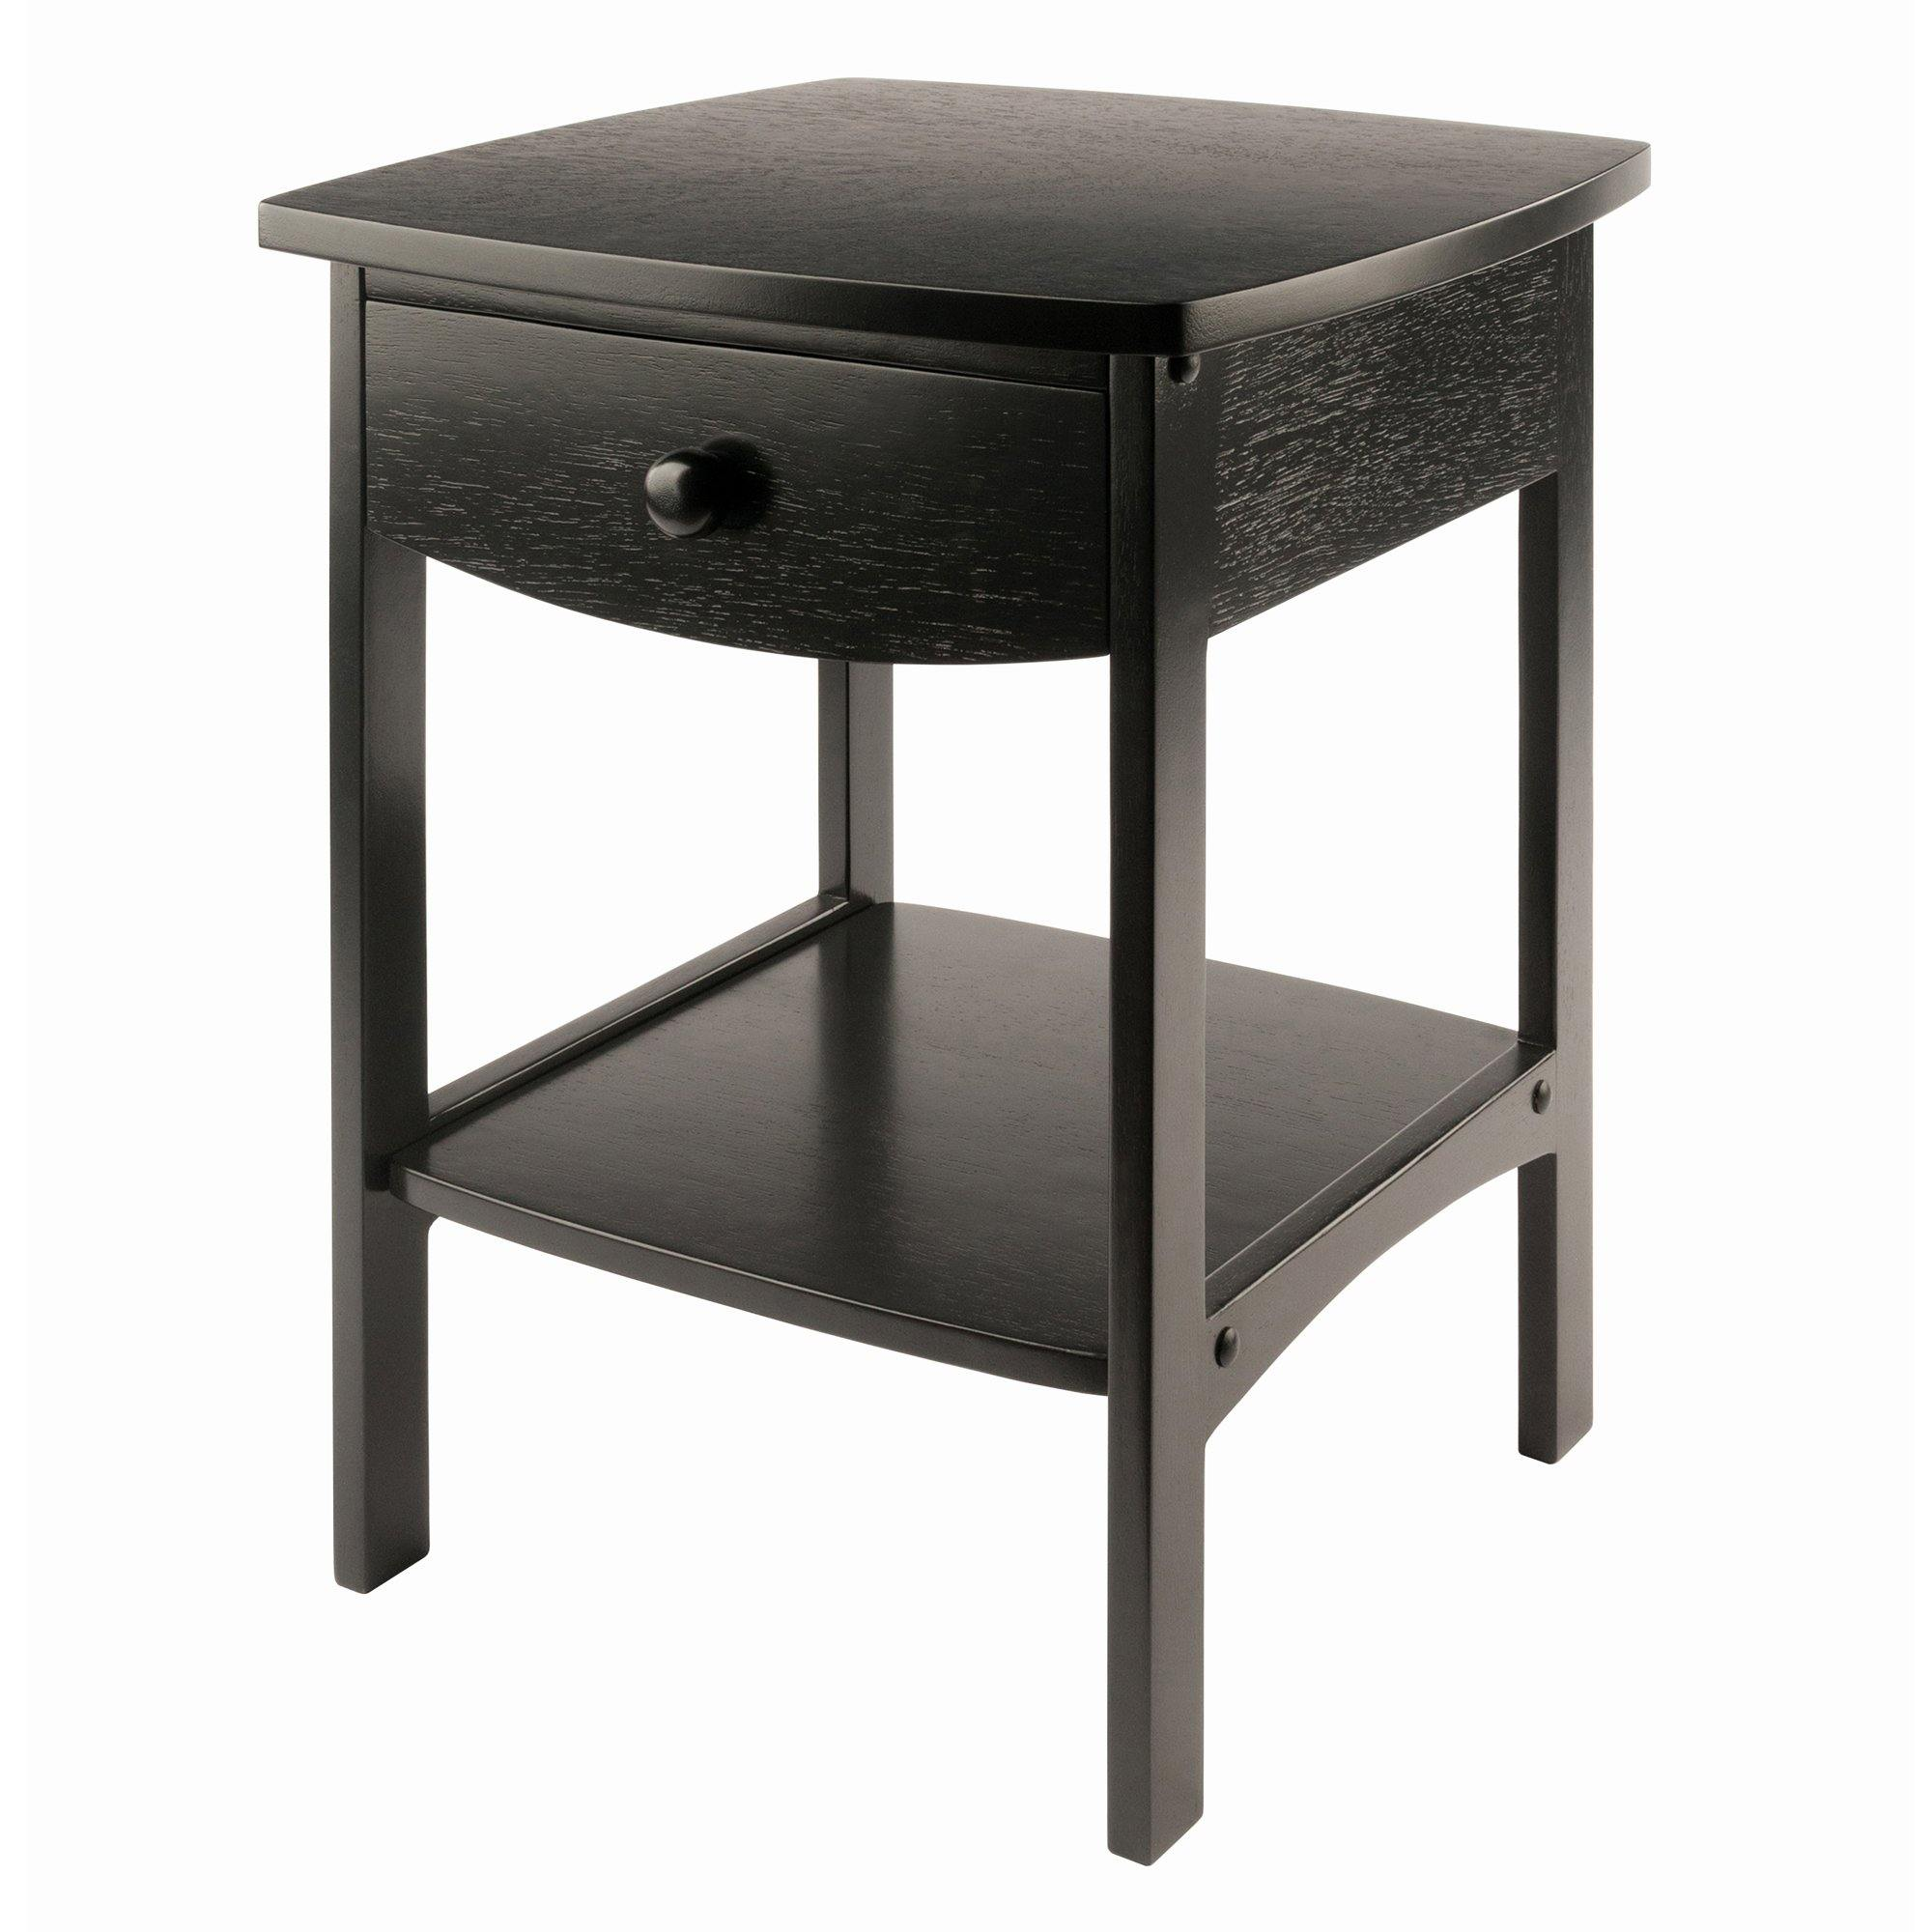 Claire Curved Accent Table, Nightstand, Black - My USA Furniture